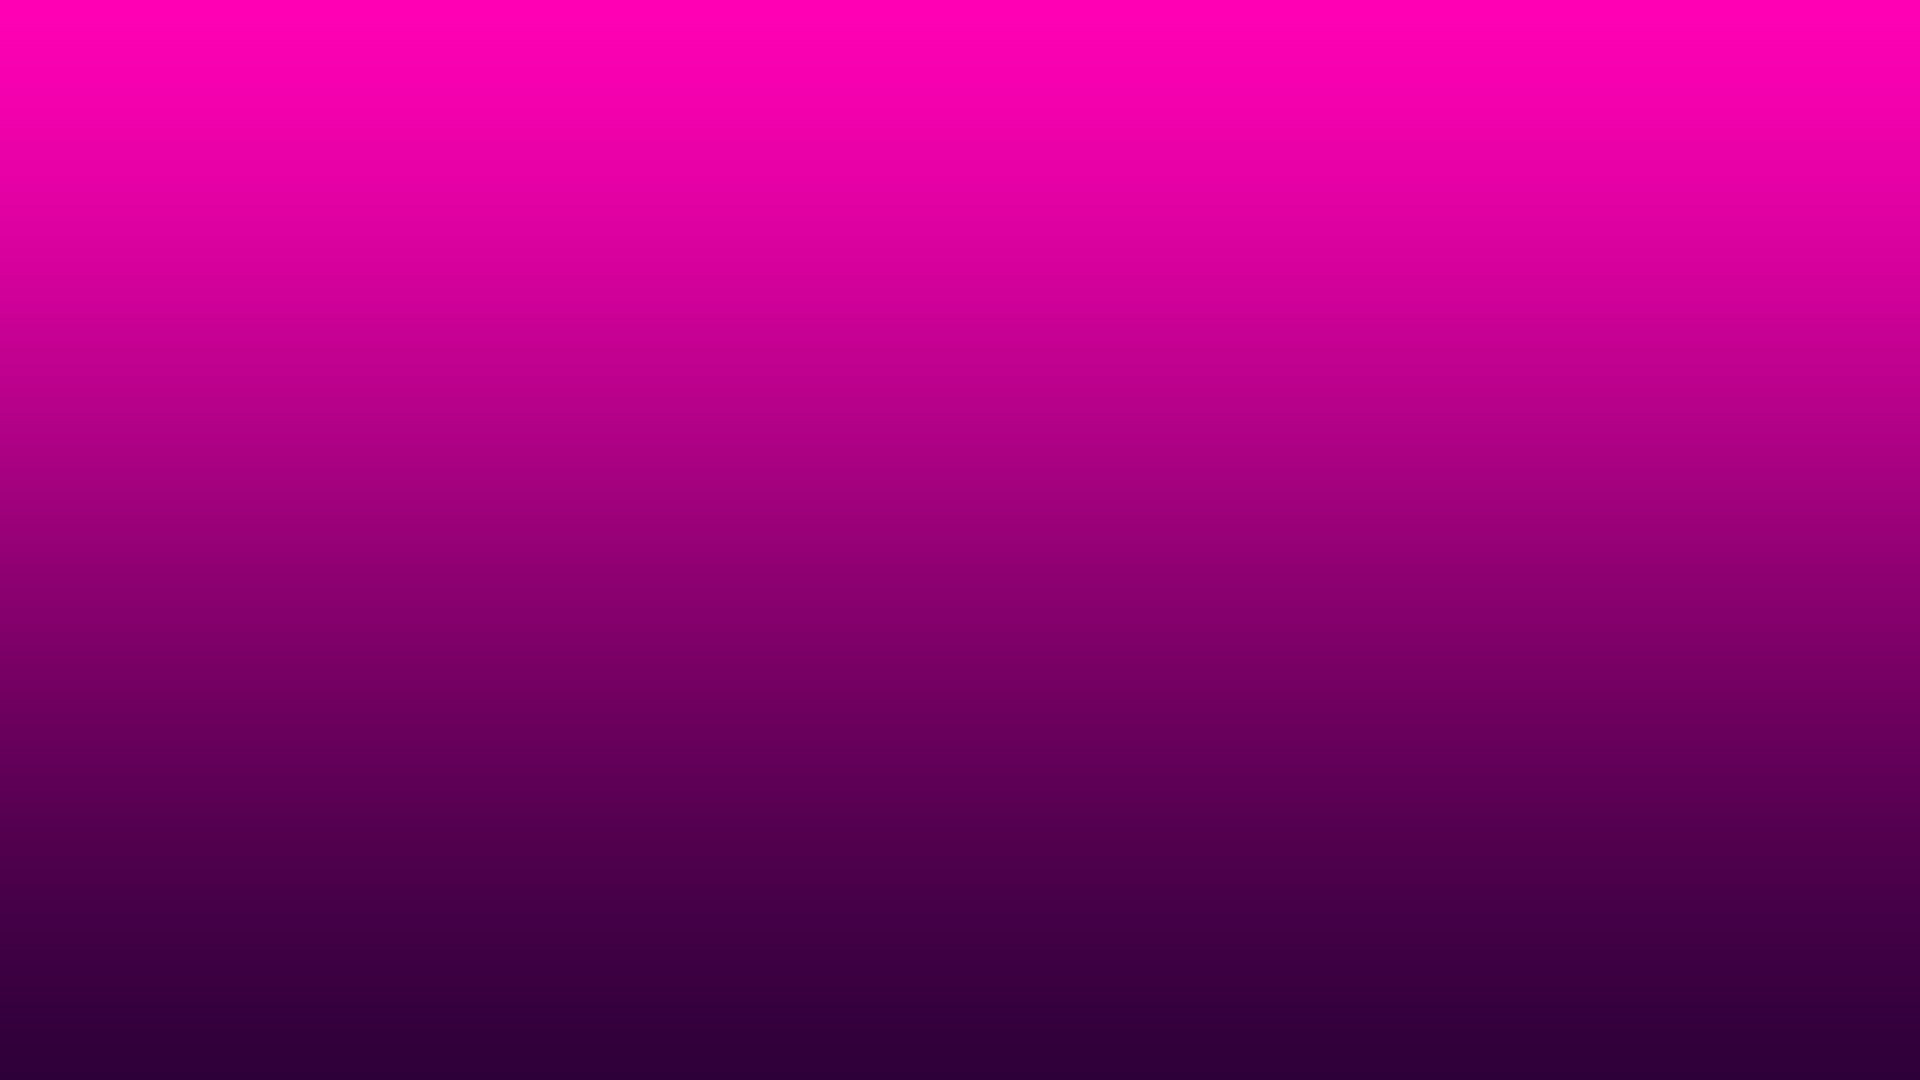 Pink And Purple Gradient Wallpaper 63439 1920x1080px